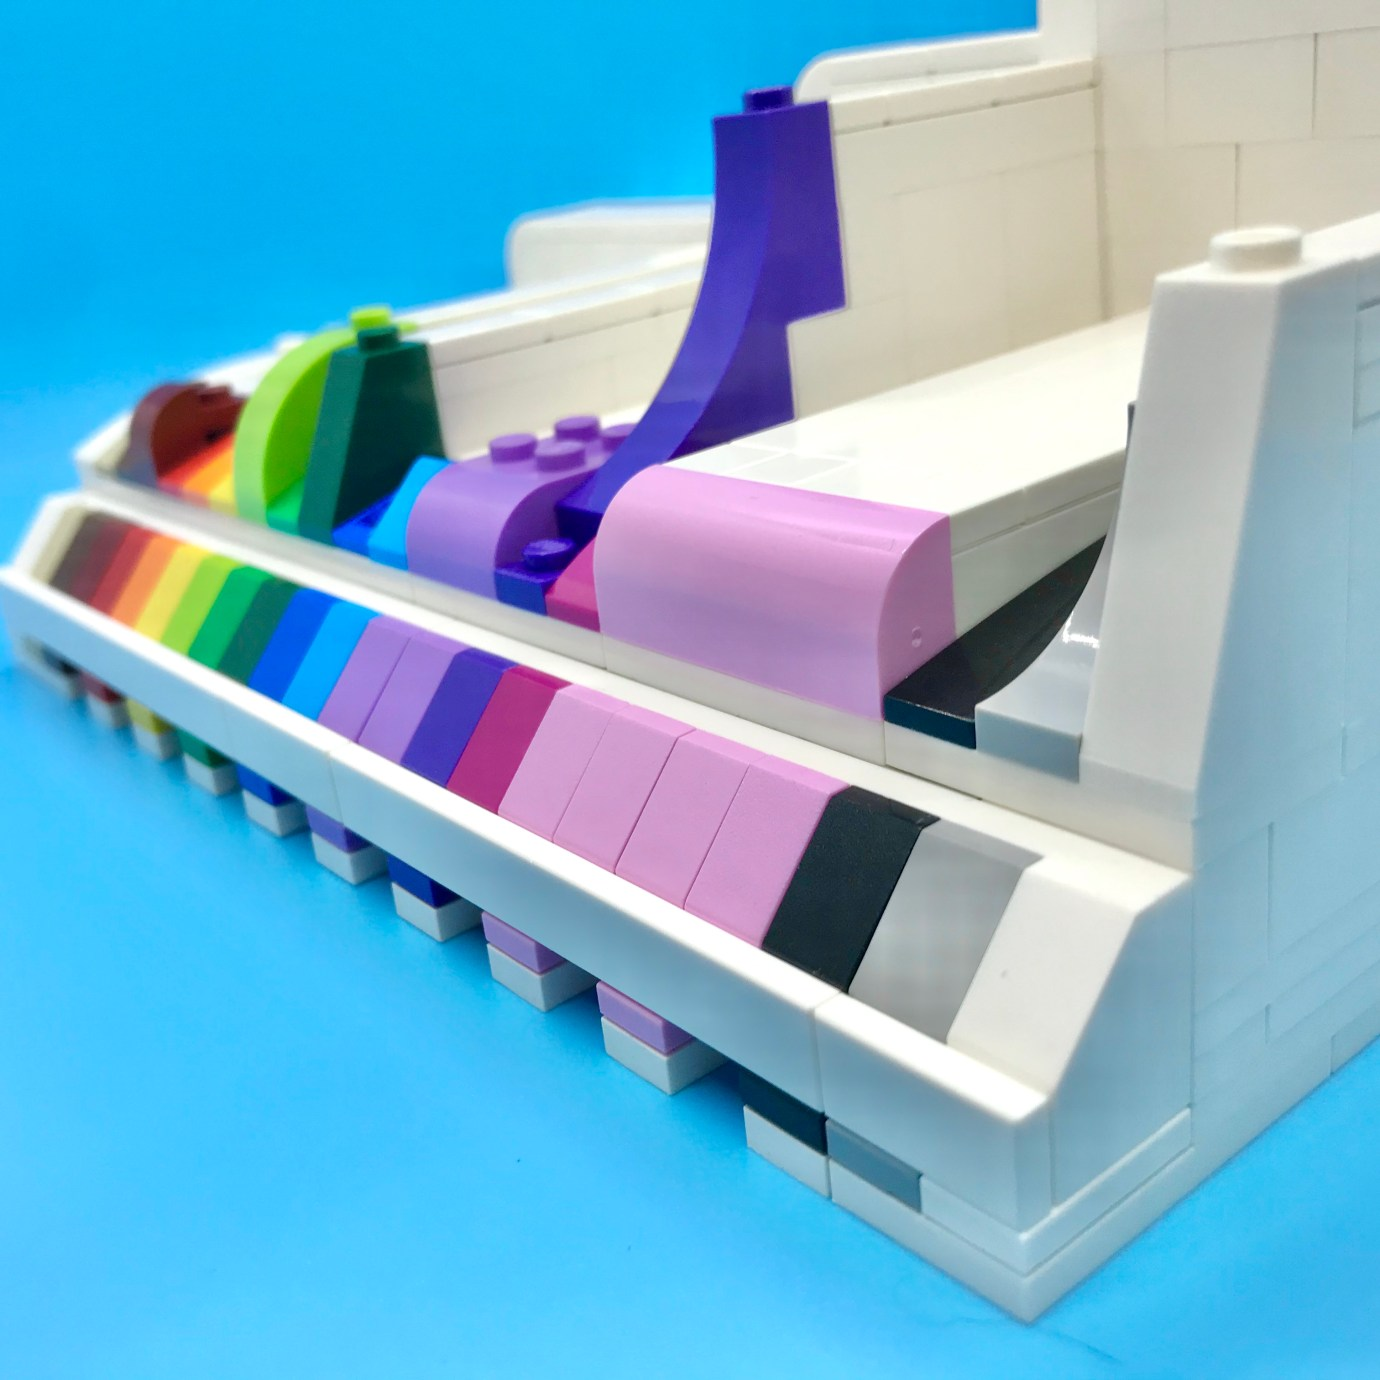 A LEGO slope display, with different slope elements and in a pleasing color order. Angled view.